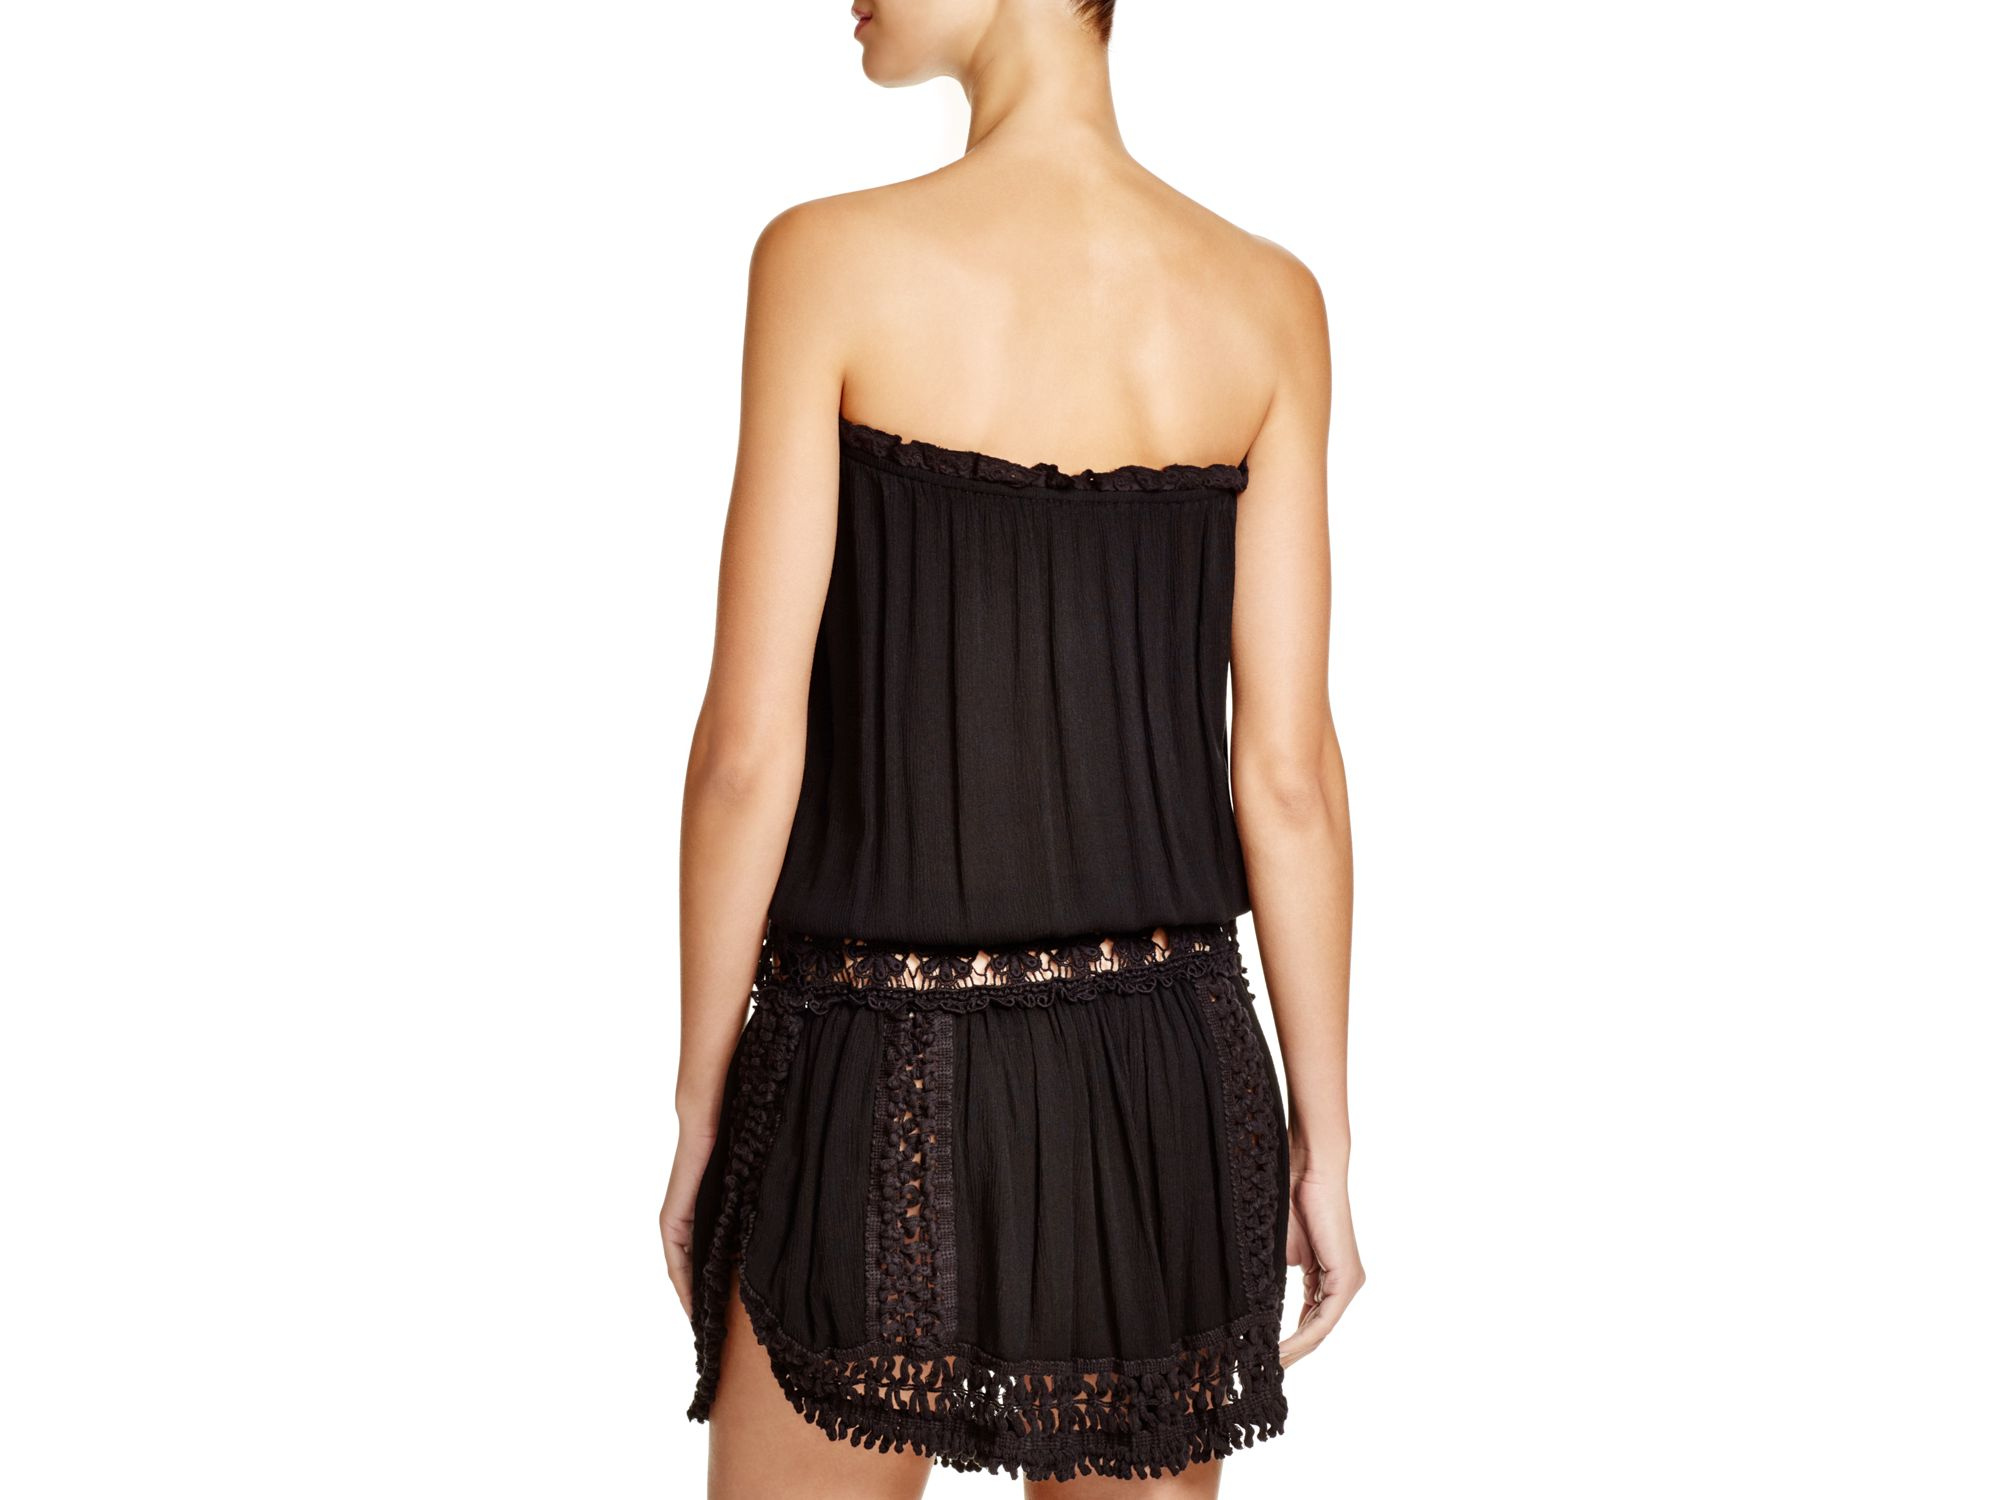 9e1d4275b7 Surf Gypsy Crocheted Strapless Dress Swim Cover Up in Black - Lyst